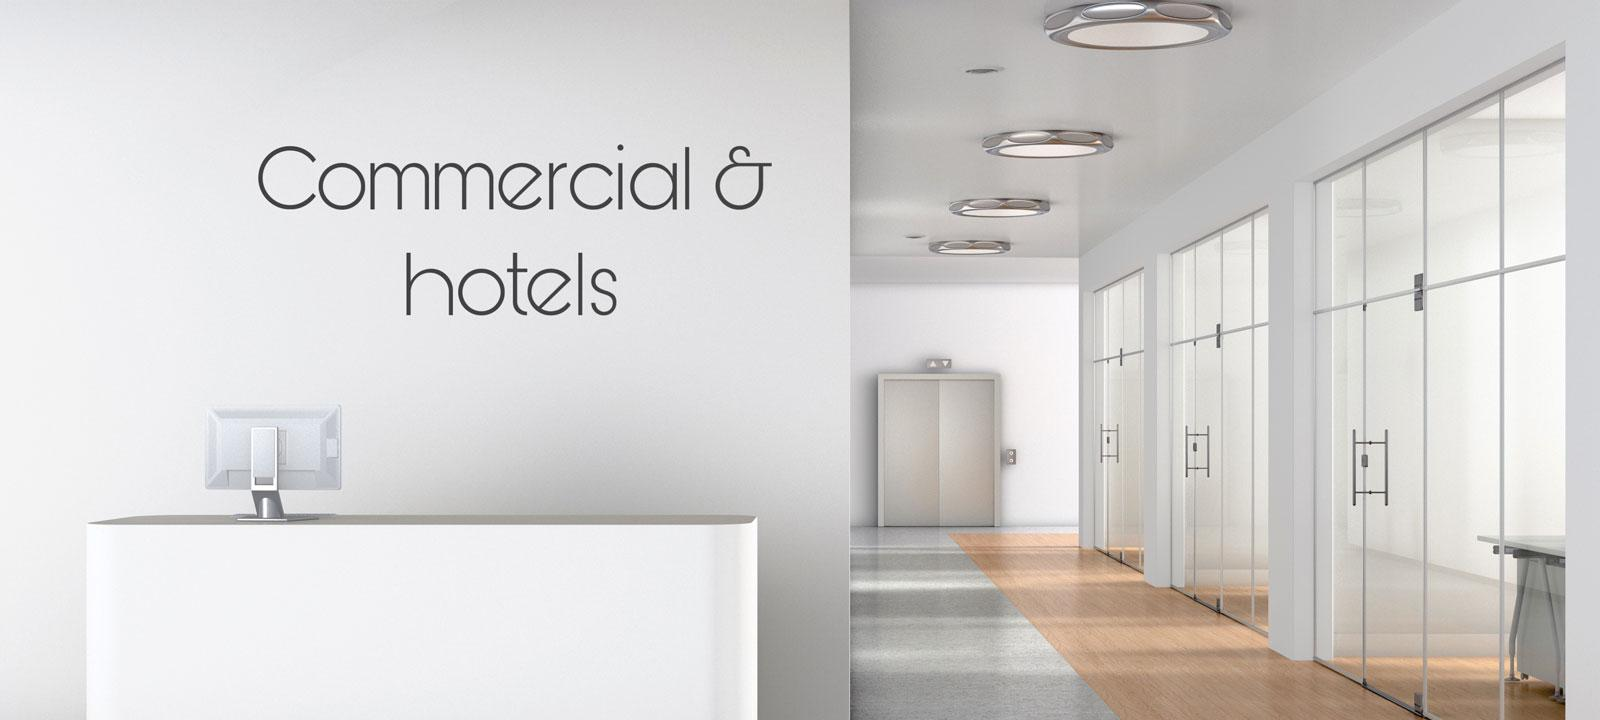 Commercial & Hotels